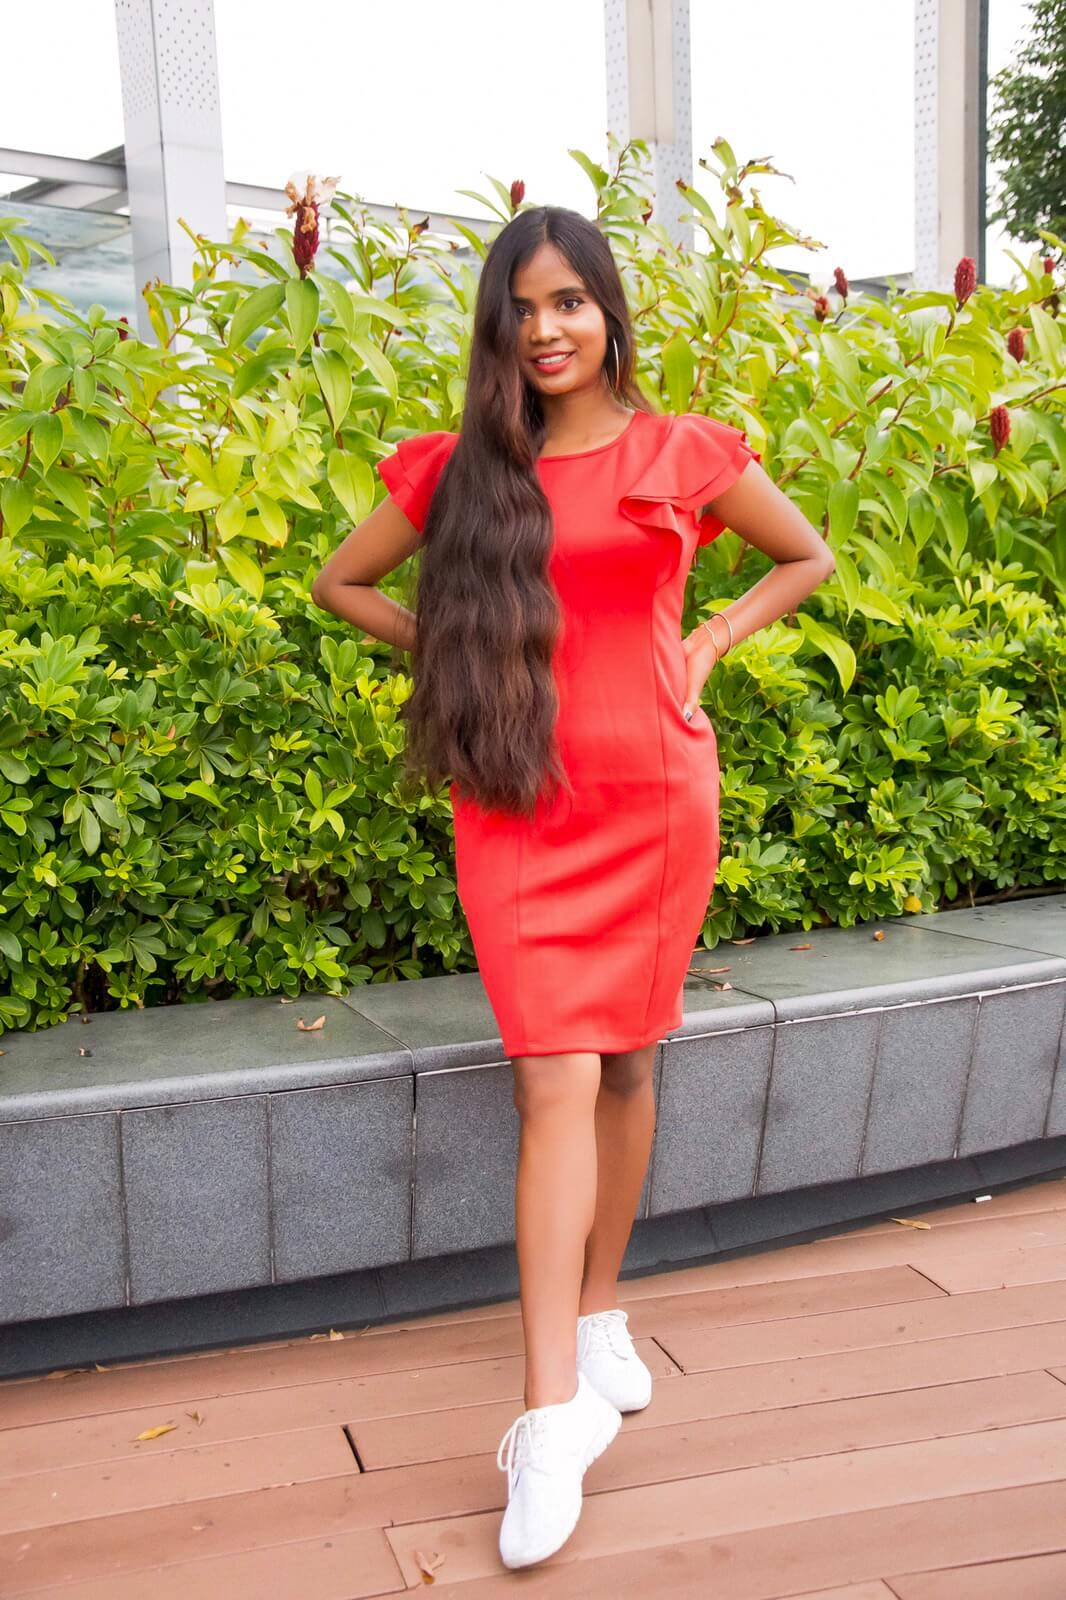 girl with long hair wearing red dress